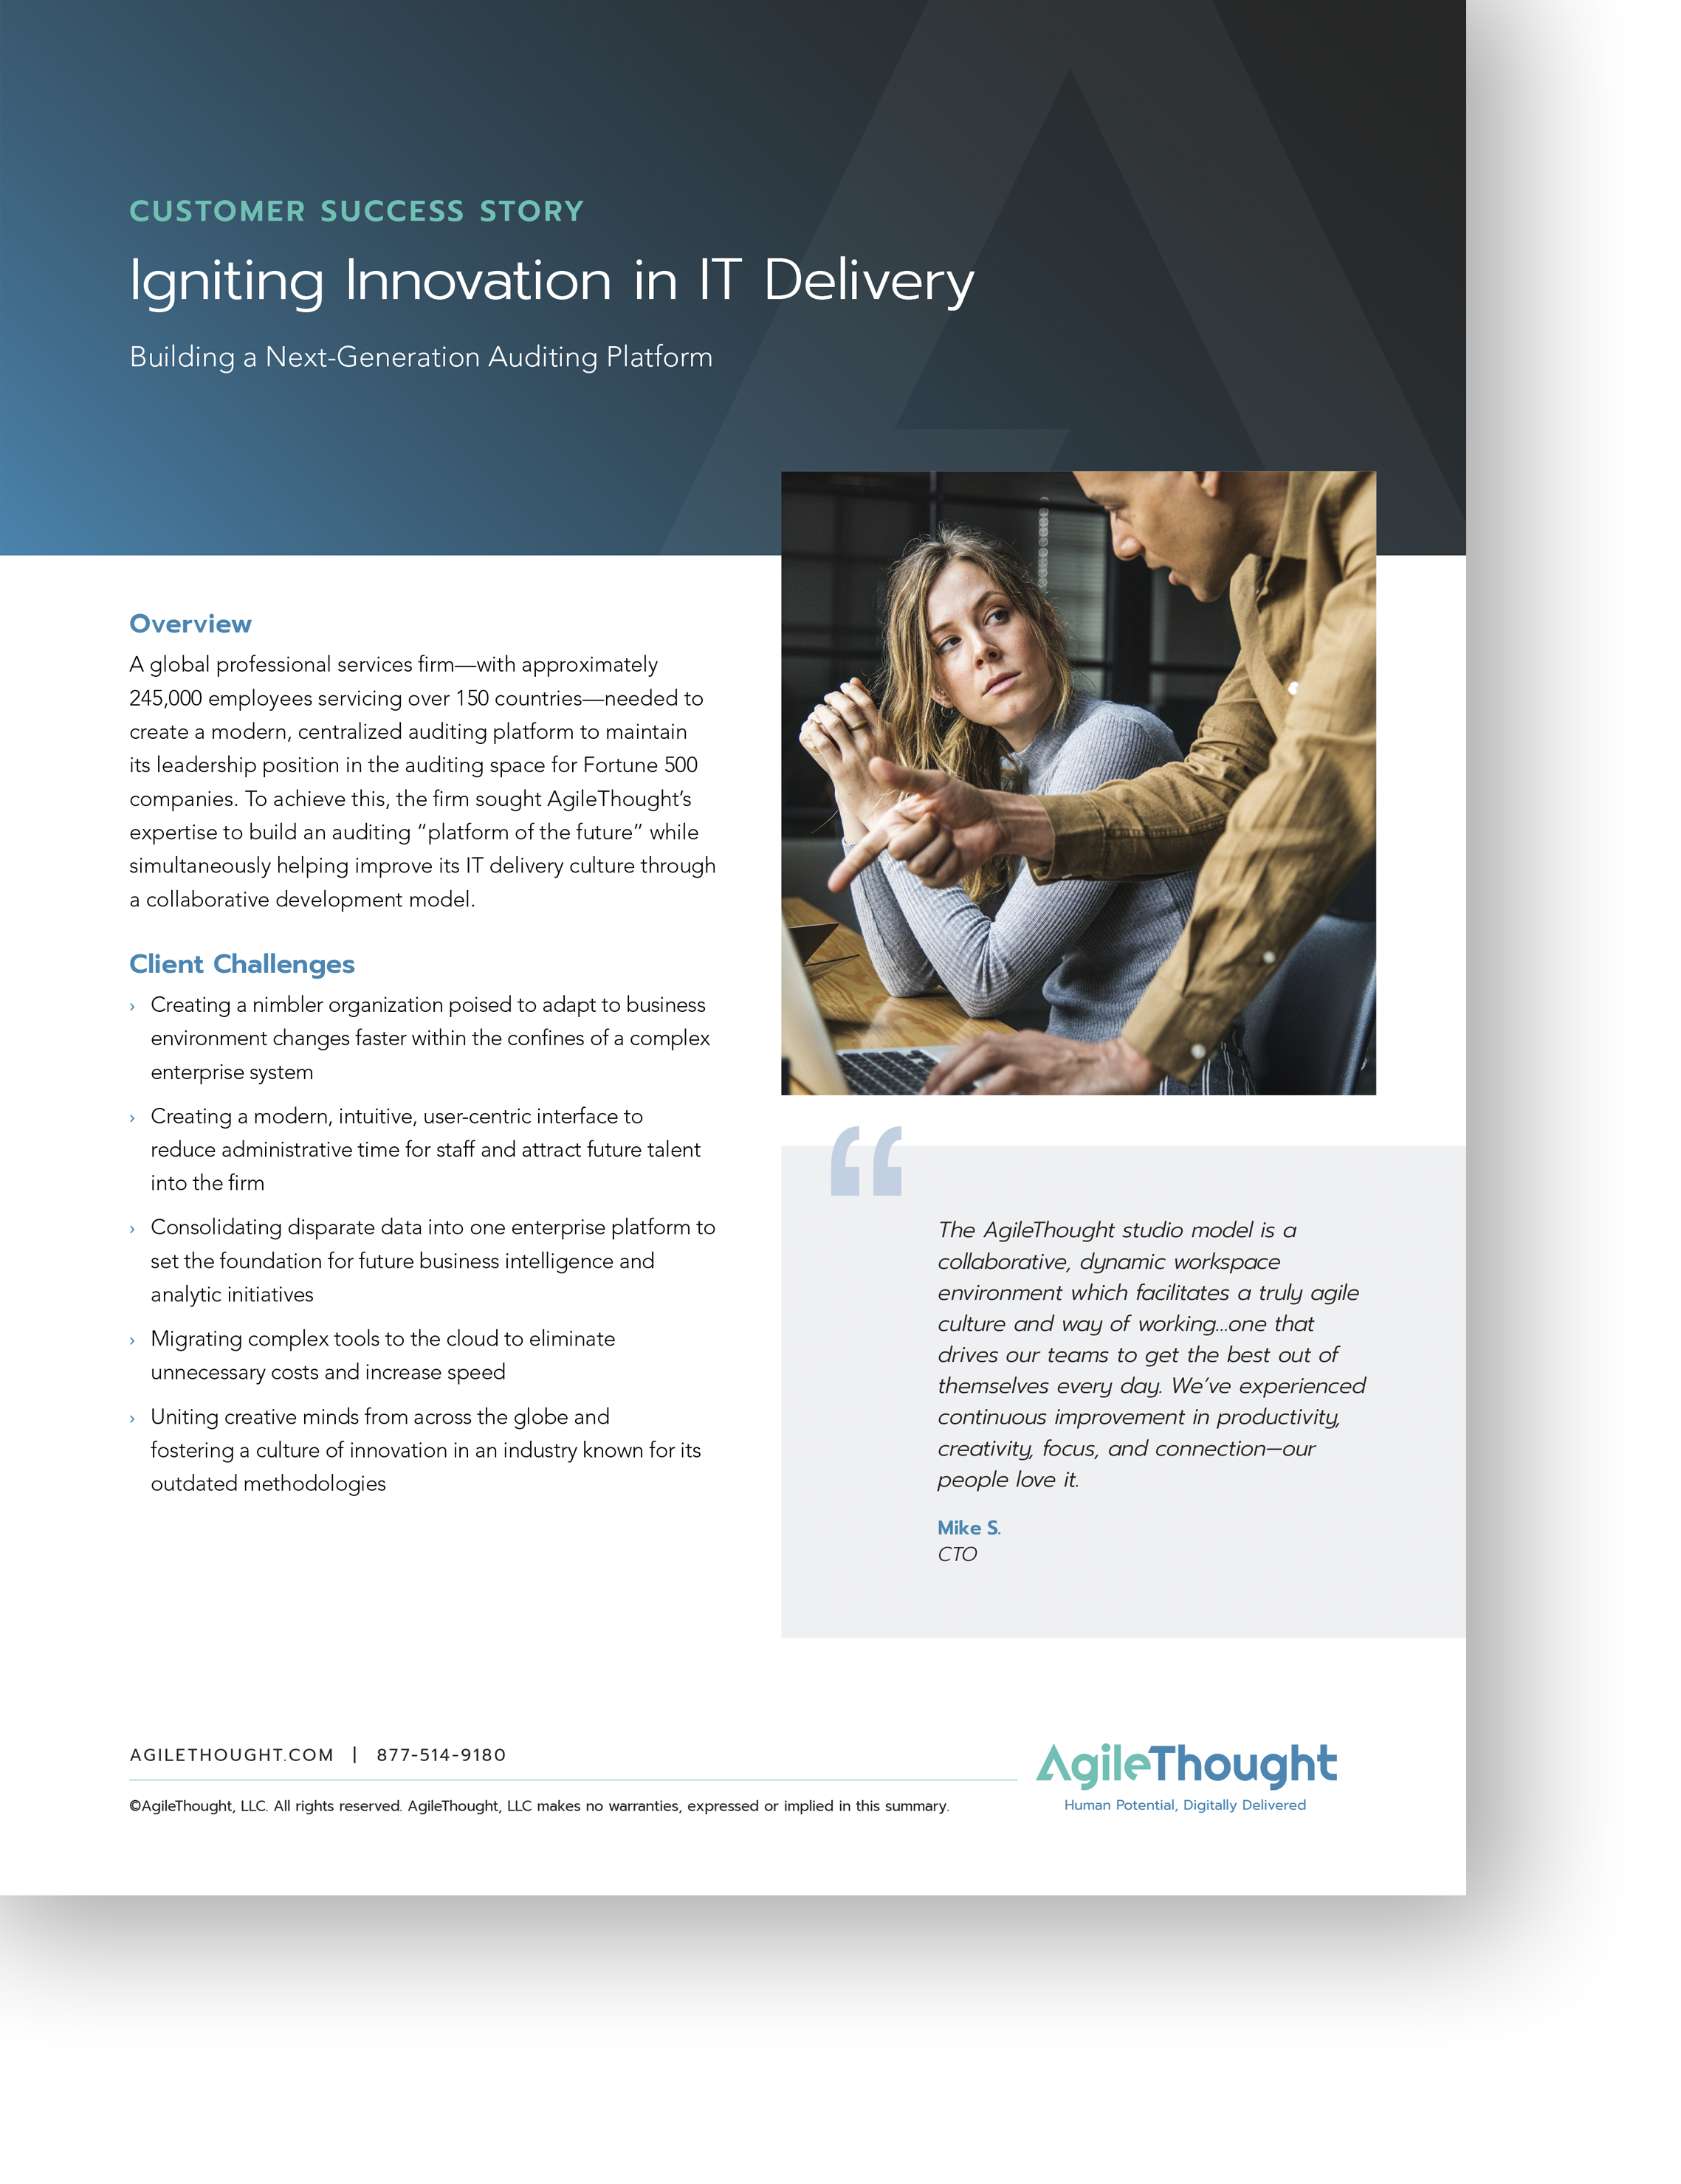 innovation in IT delivery